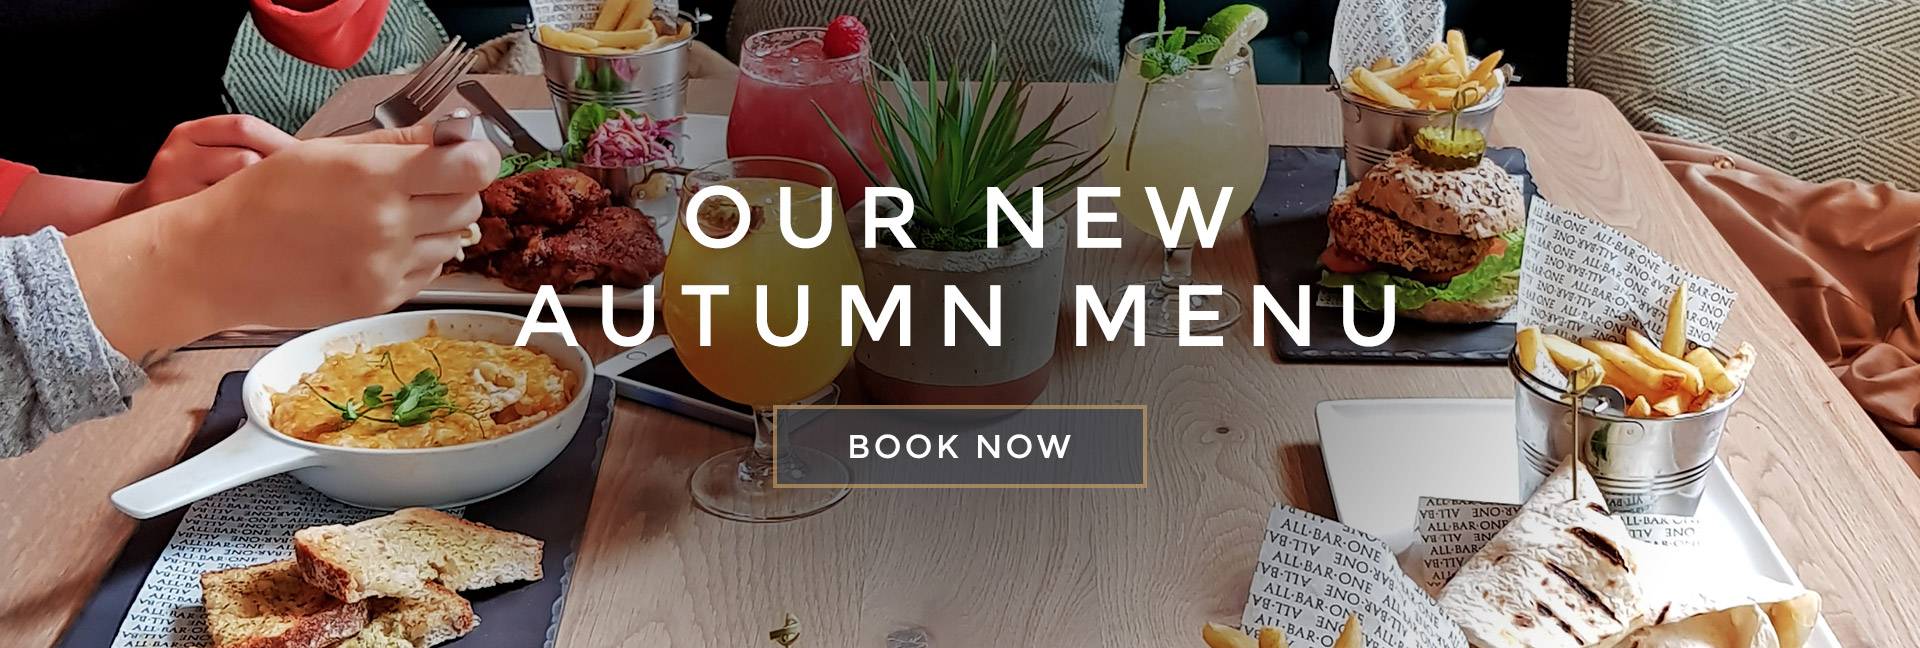 Our new Autumn menu at All Bar One Glasgow - Book now